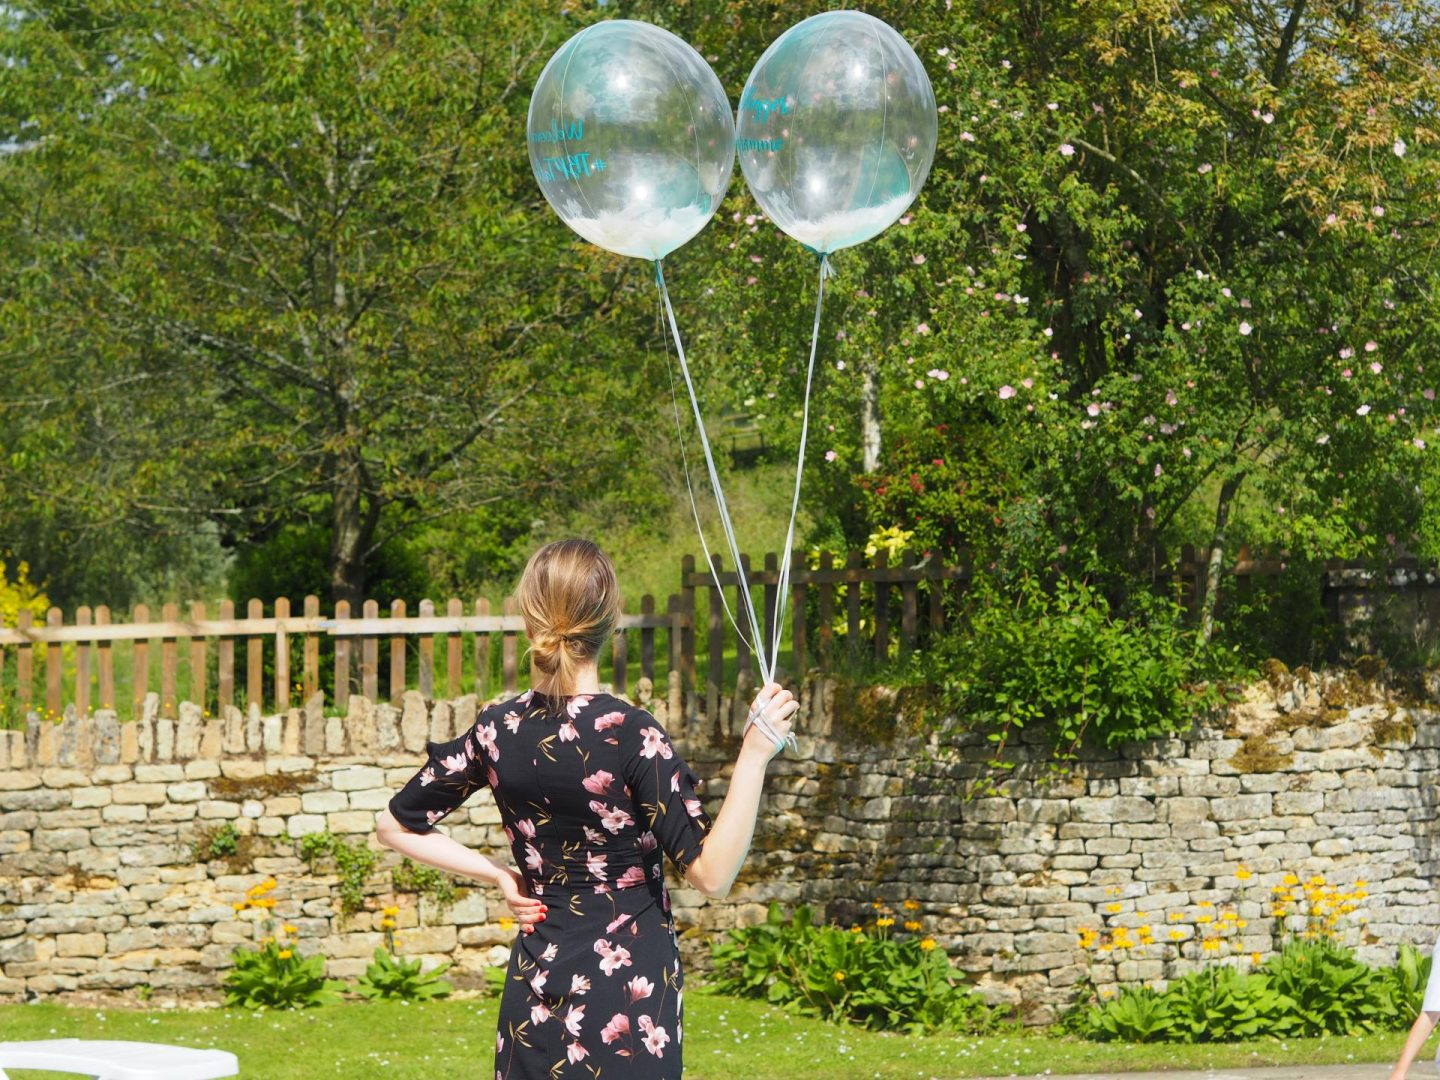 beautiful confetti bubble balloons from Pom Pom Studio.